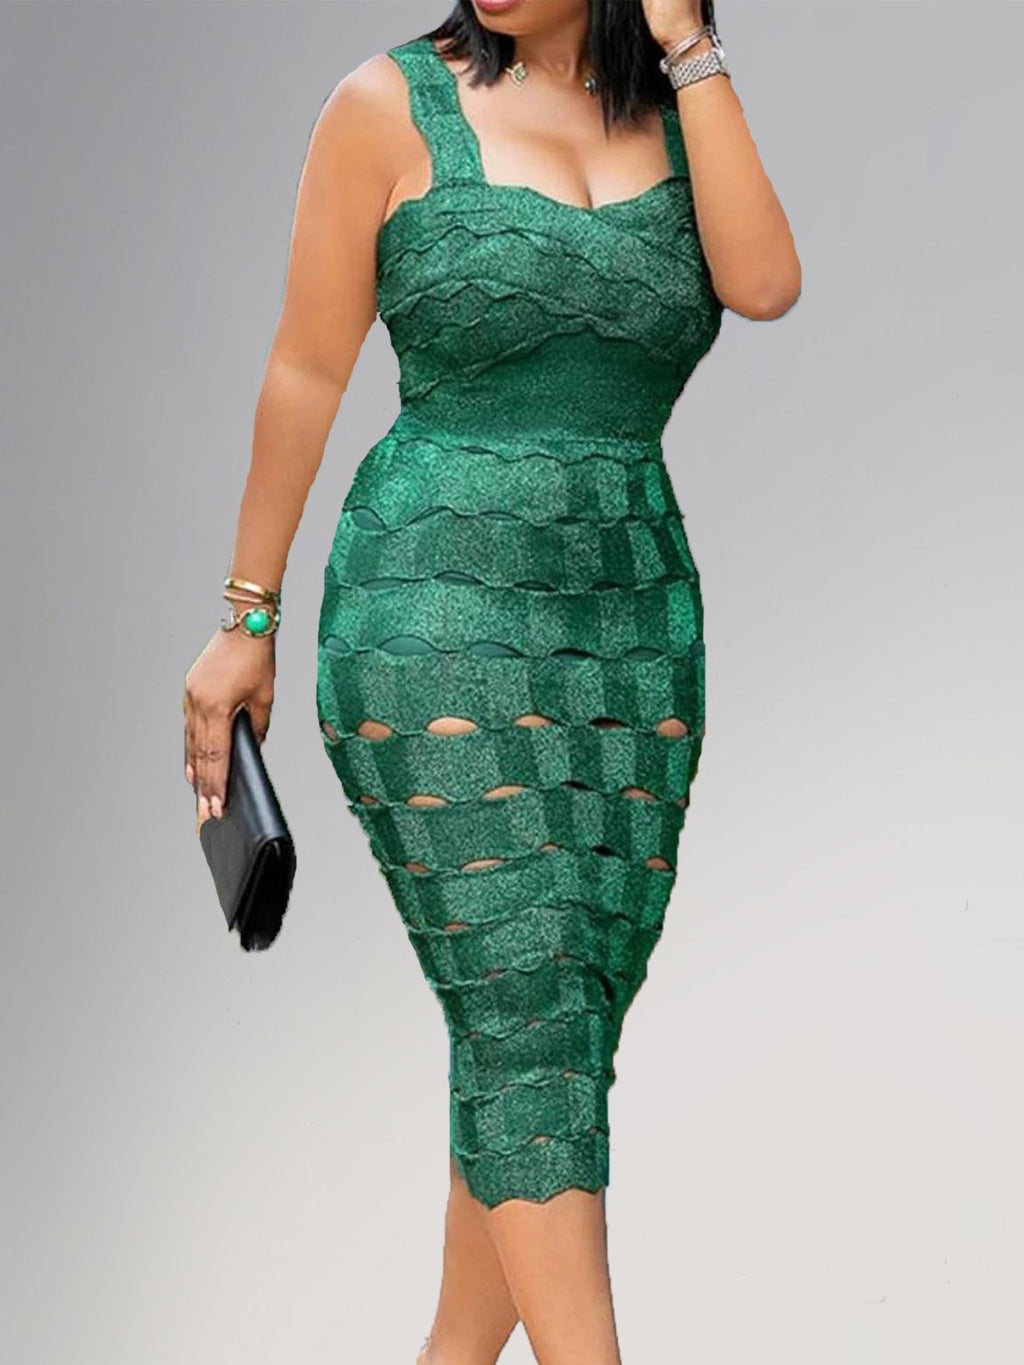 2019 New Style Plus Size Green Sexy Party Cutout Sleeveless Tank Bodycon Dress Rikkishop